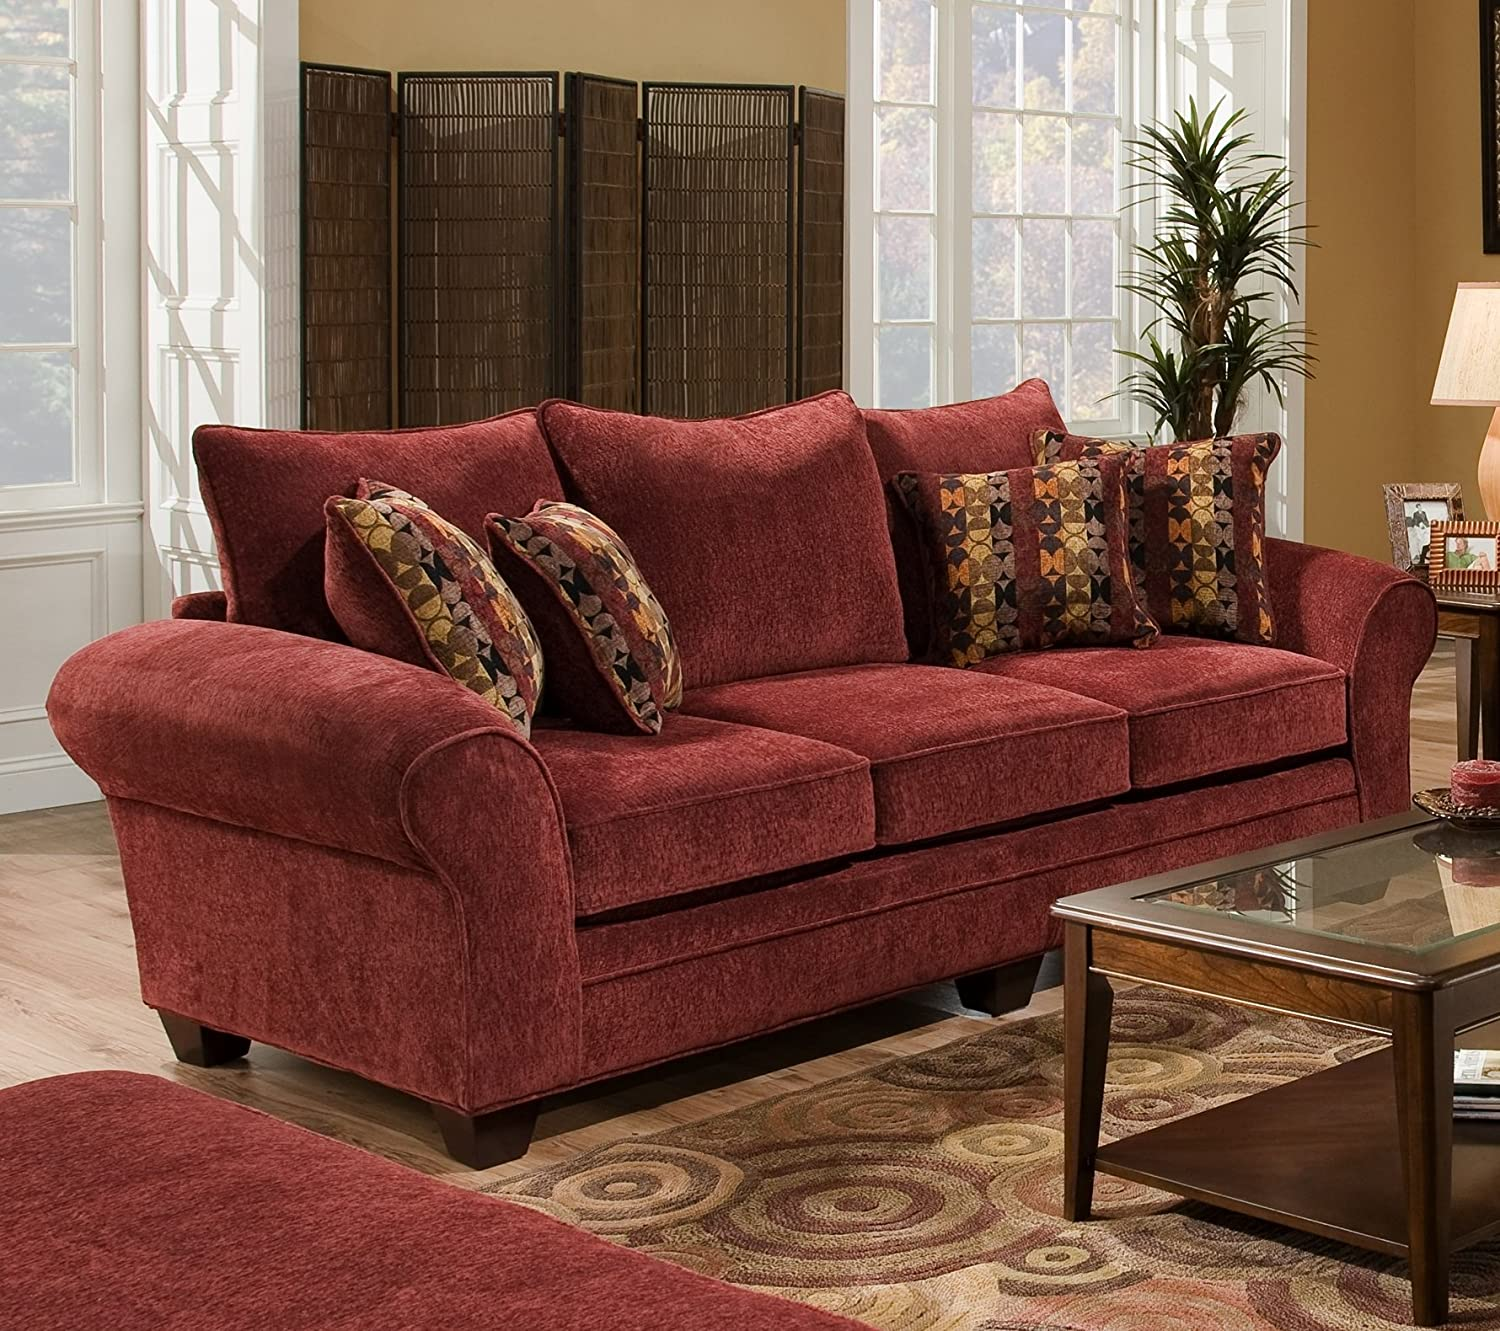 Charming Amazon.com: Chelsea Home Furniture Clearlake Sofa, Masterpiece Burgundy/Palmero  Mosaic Pillows(2): Kitchen U0026 Dining